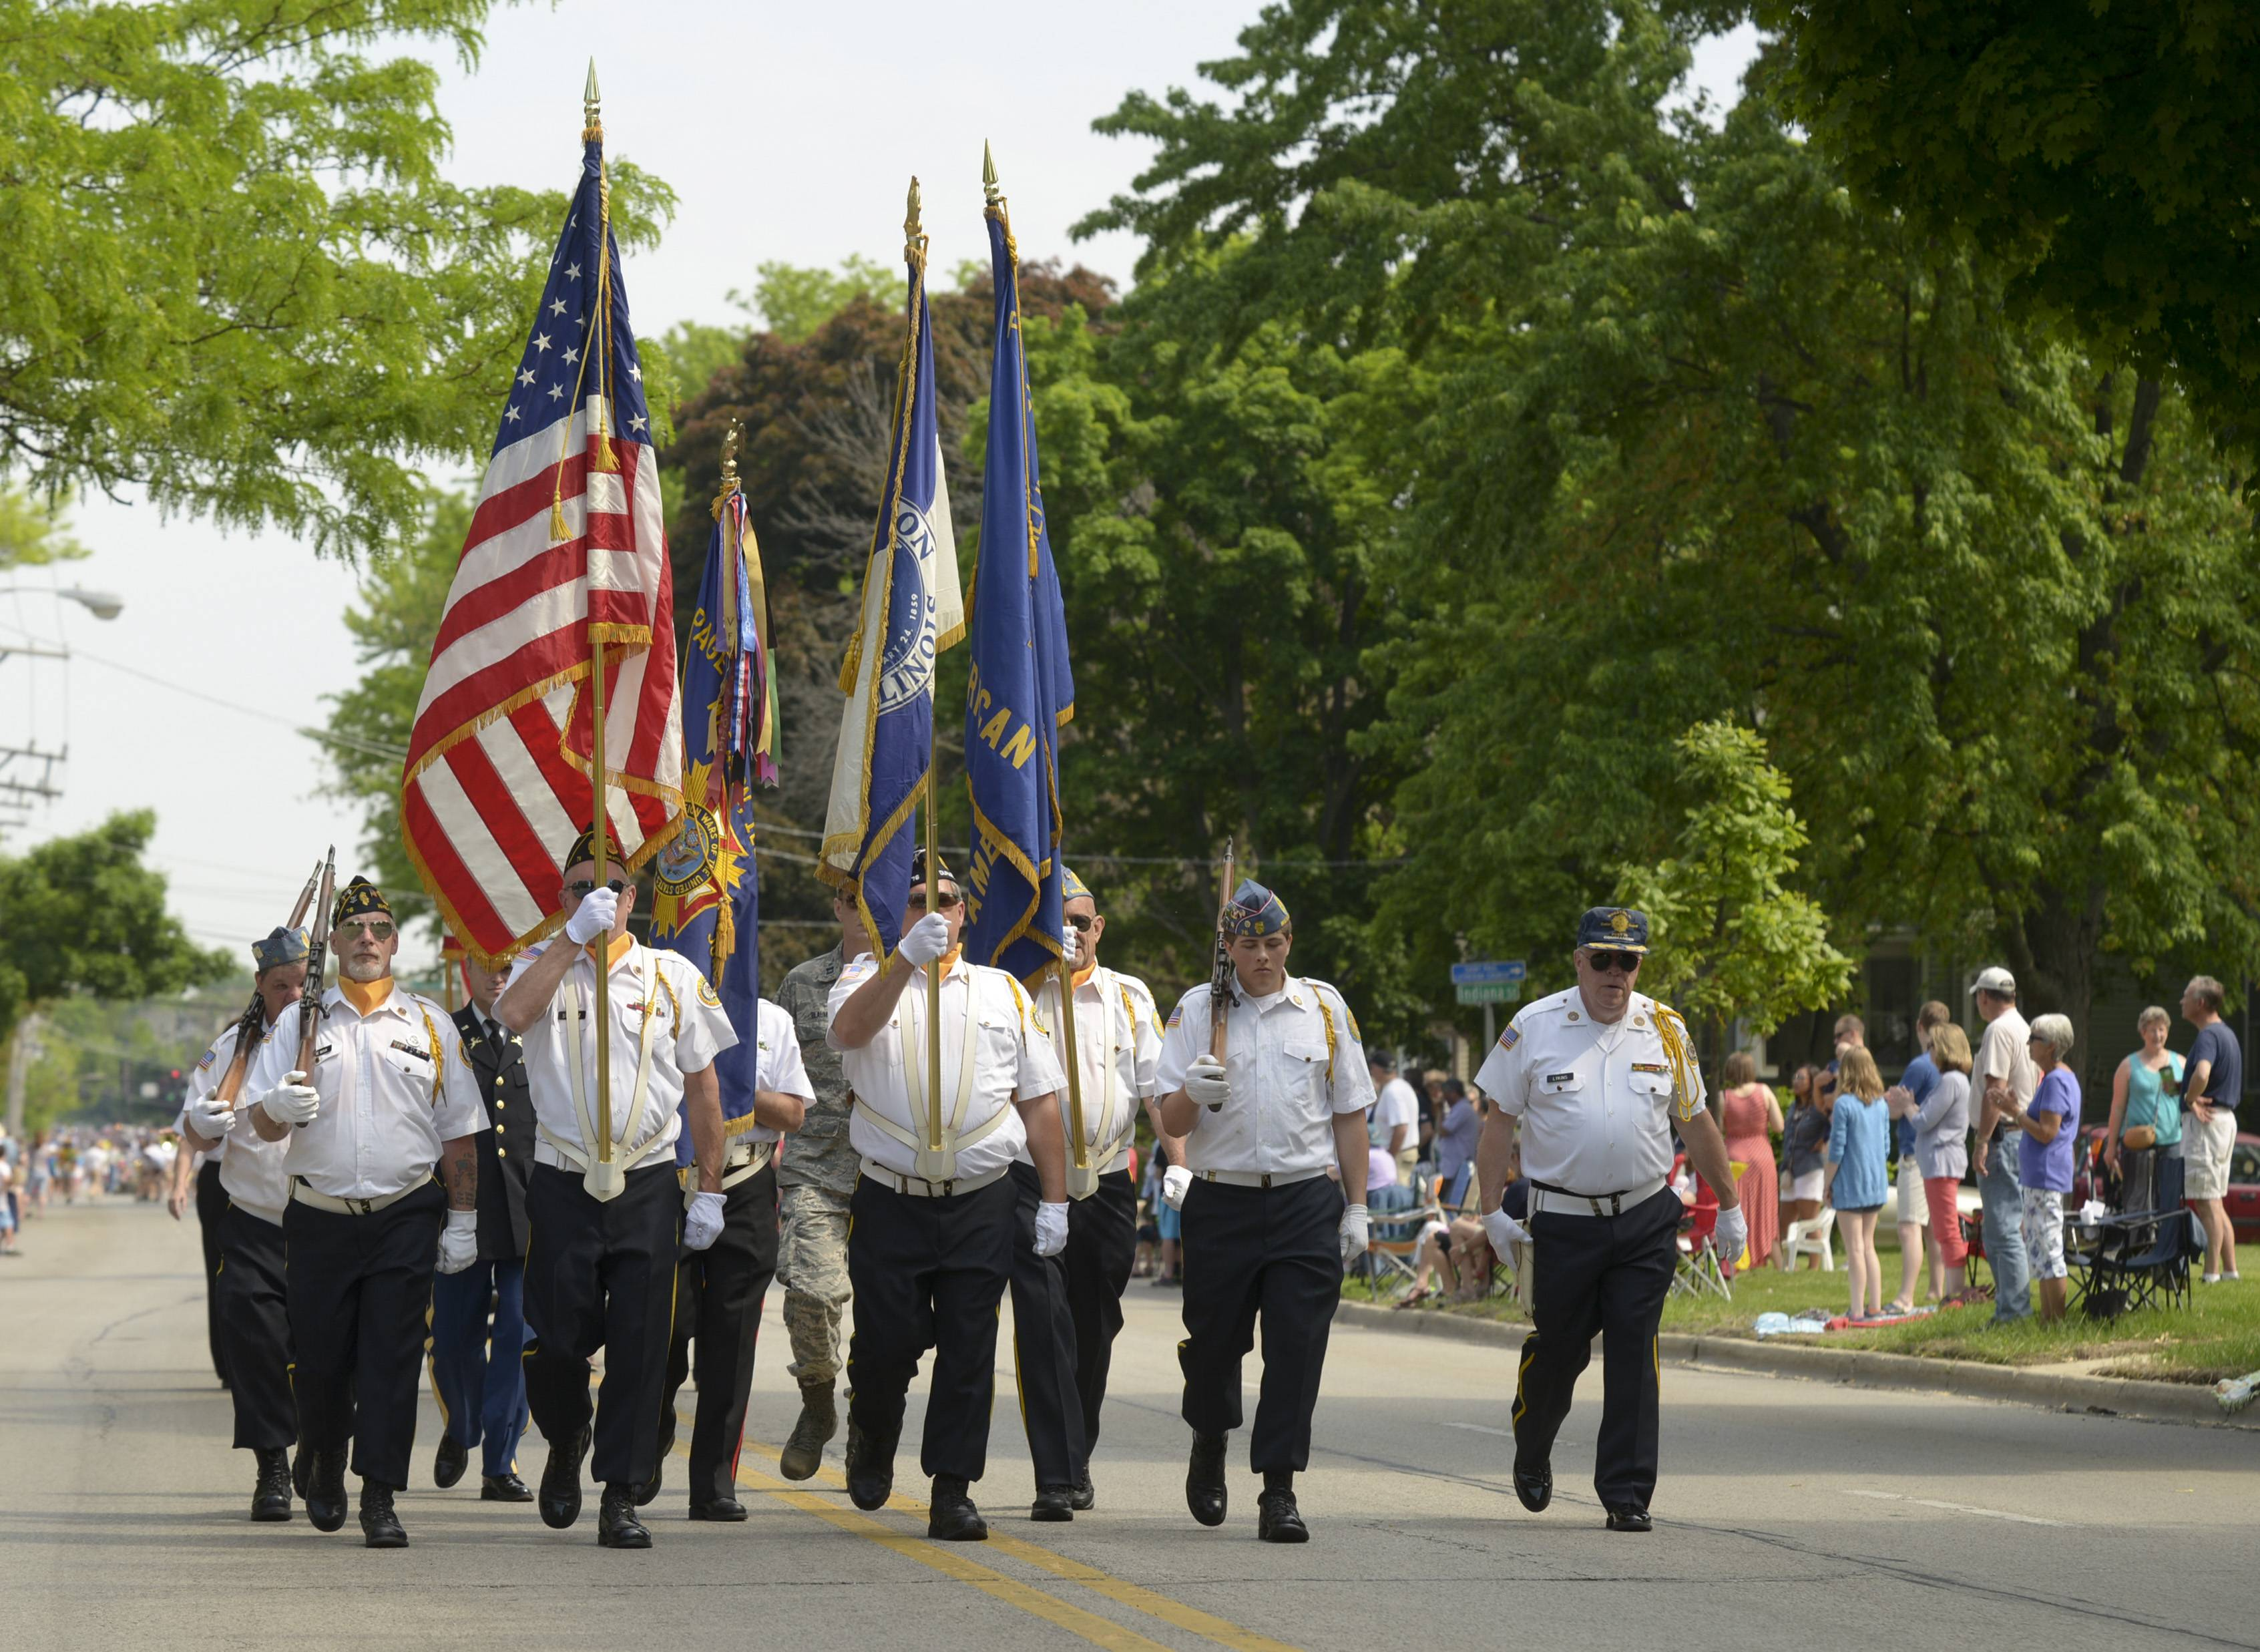 American Legion and the VFW members march in the Wheaton Memorial Day parade.